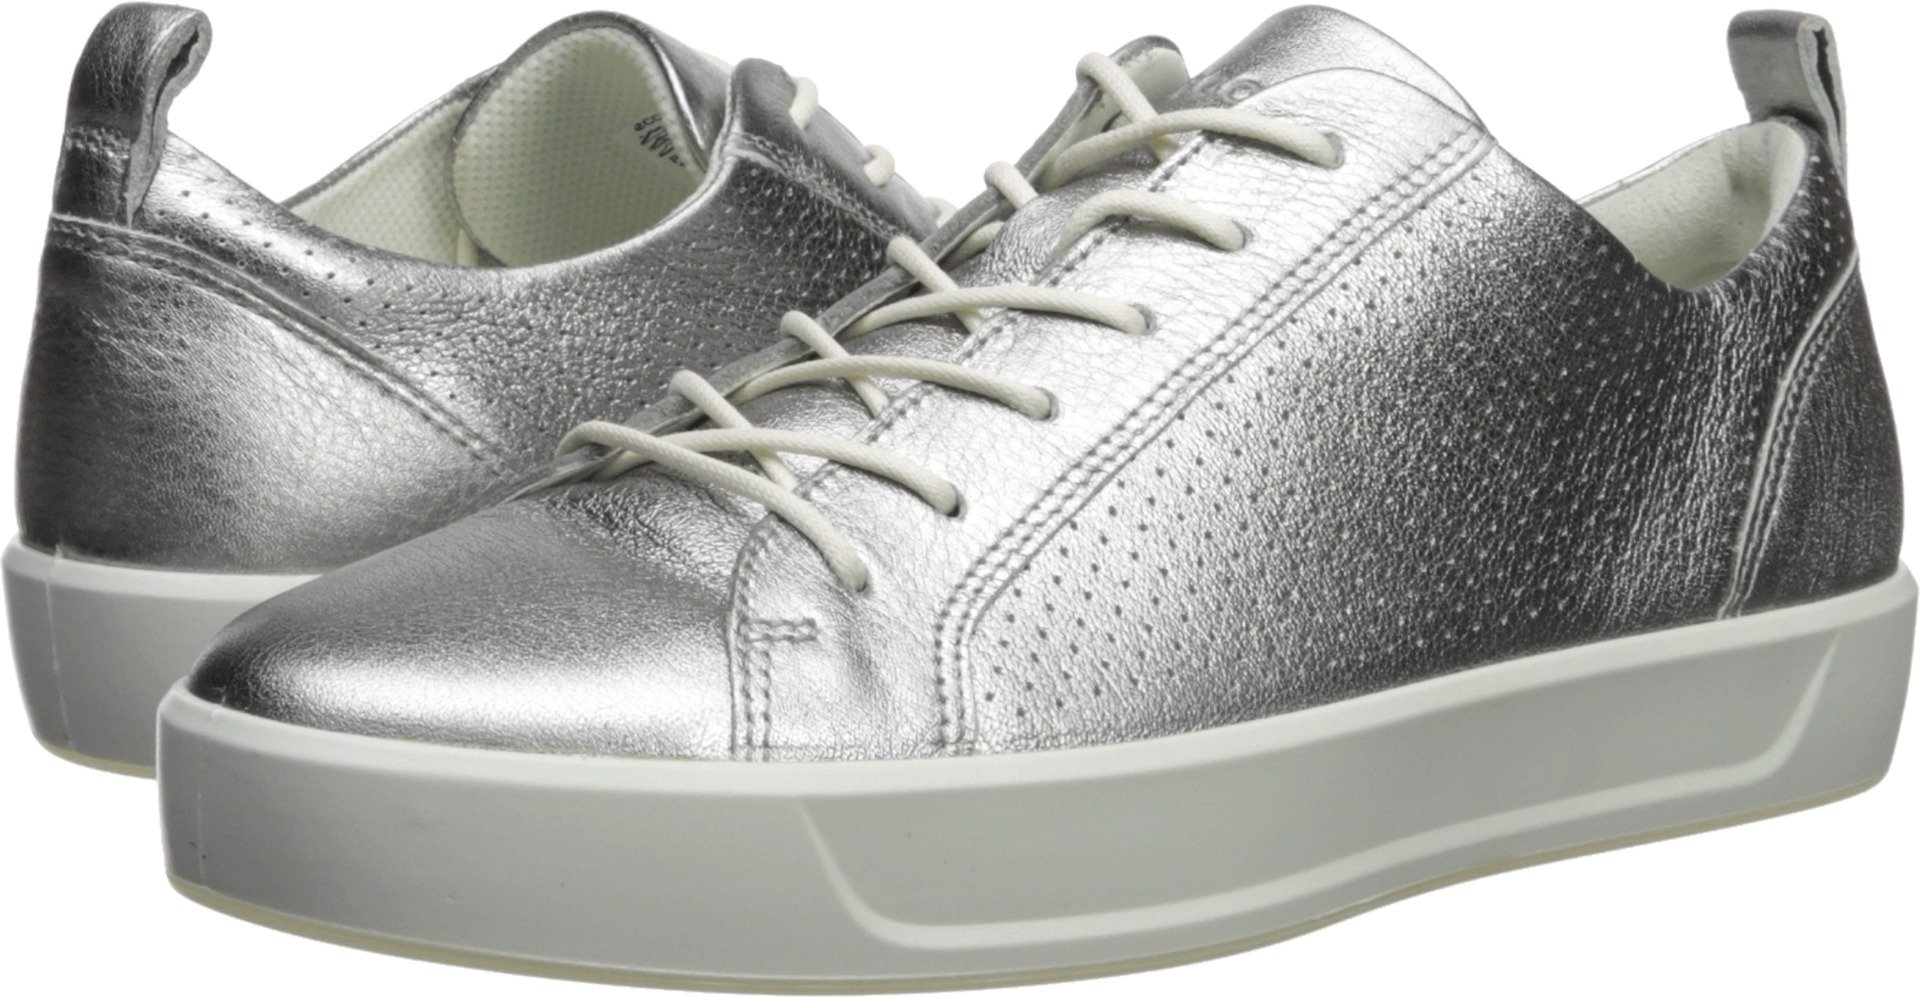 ECCO Women's Women's Soft 8 Perforated Tie Sneaker, Alusilver, 40 M EU (9-9.5 US)